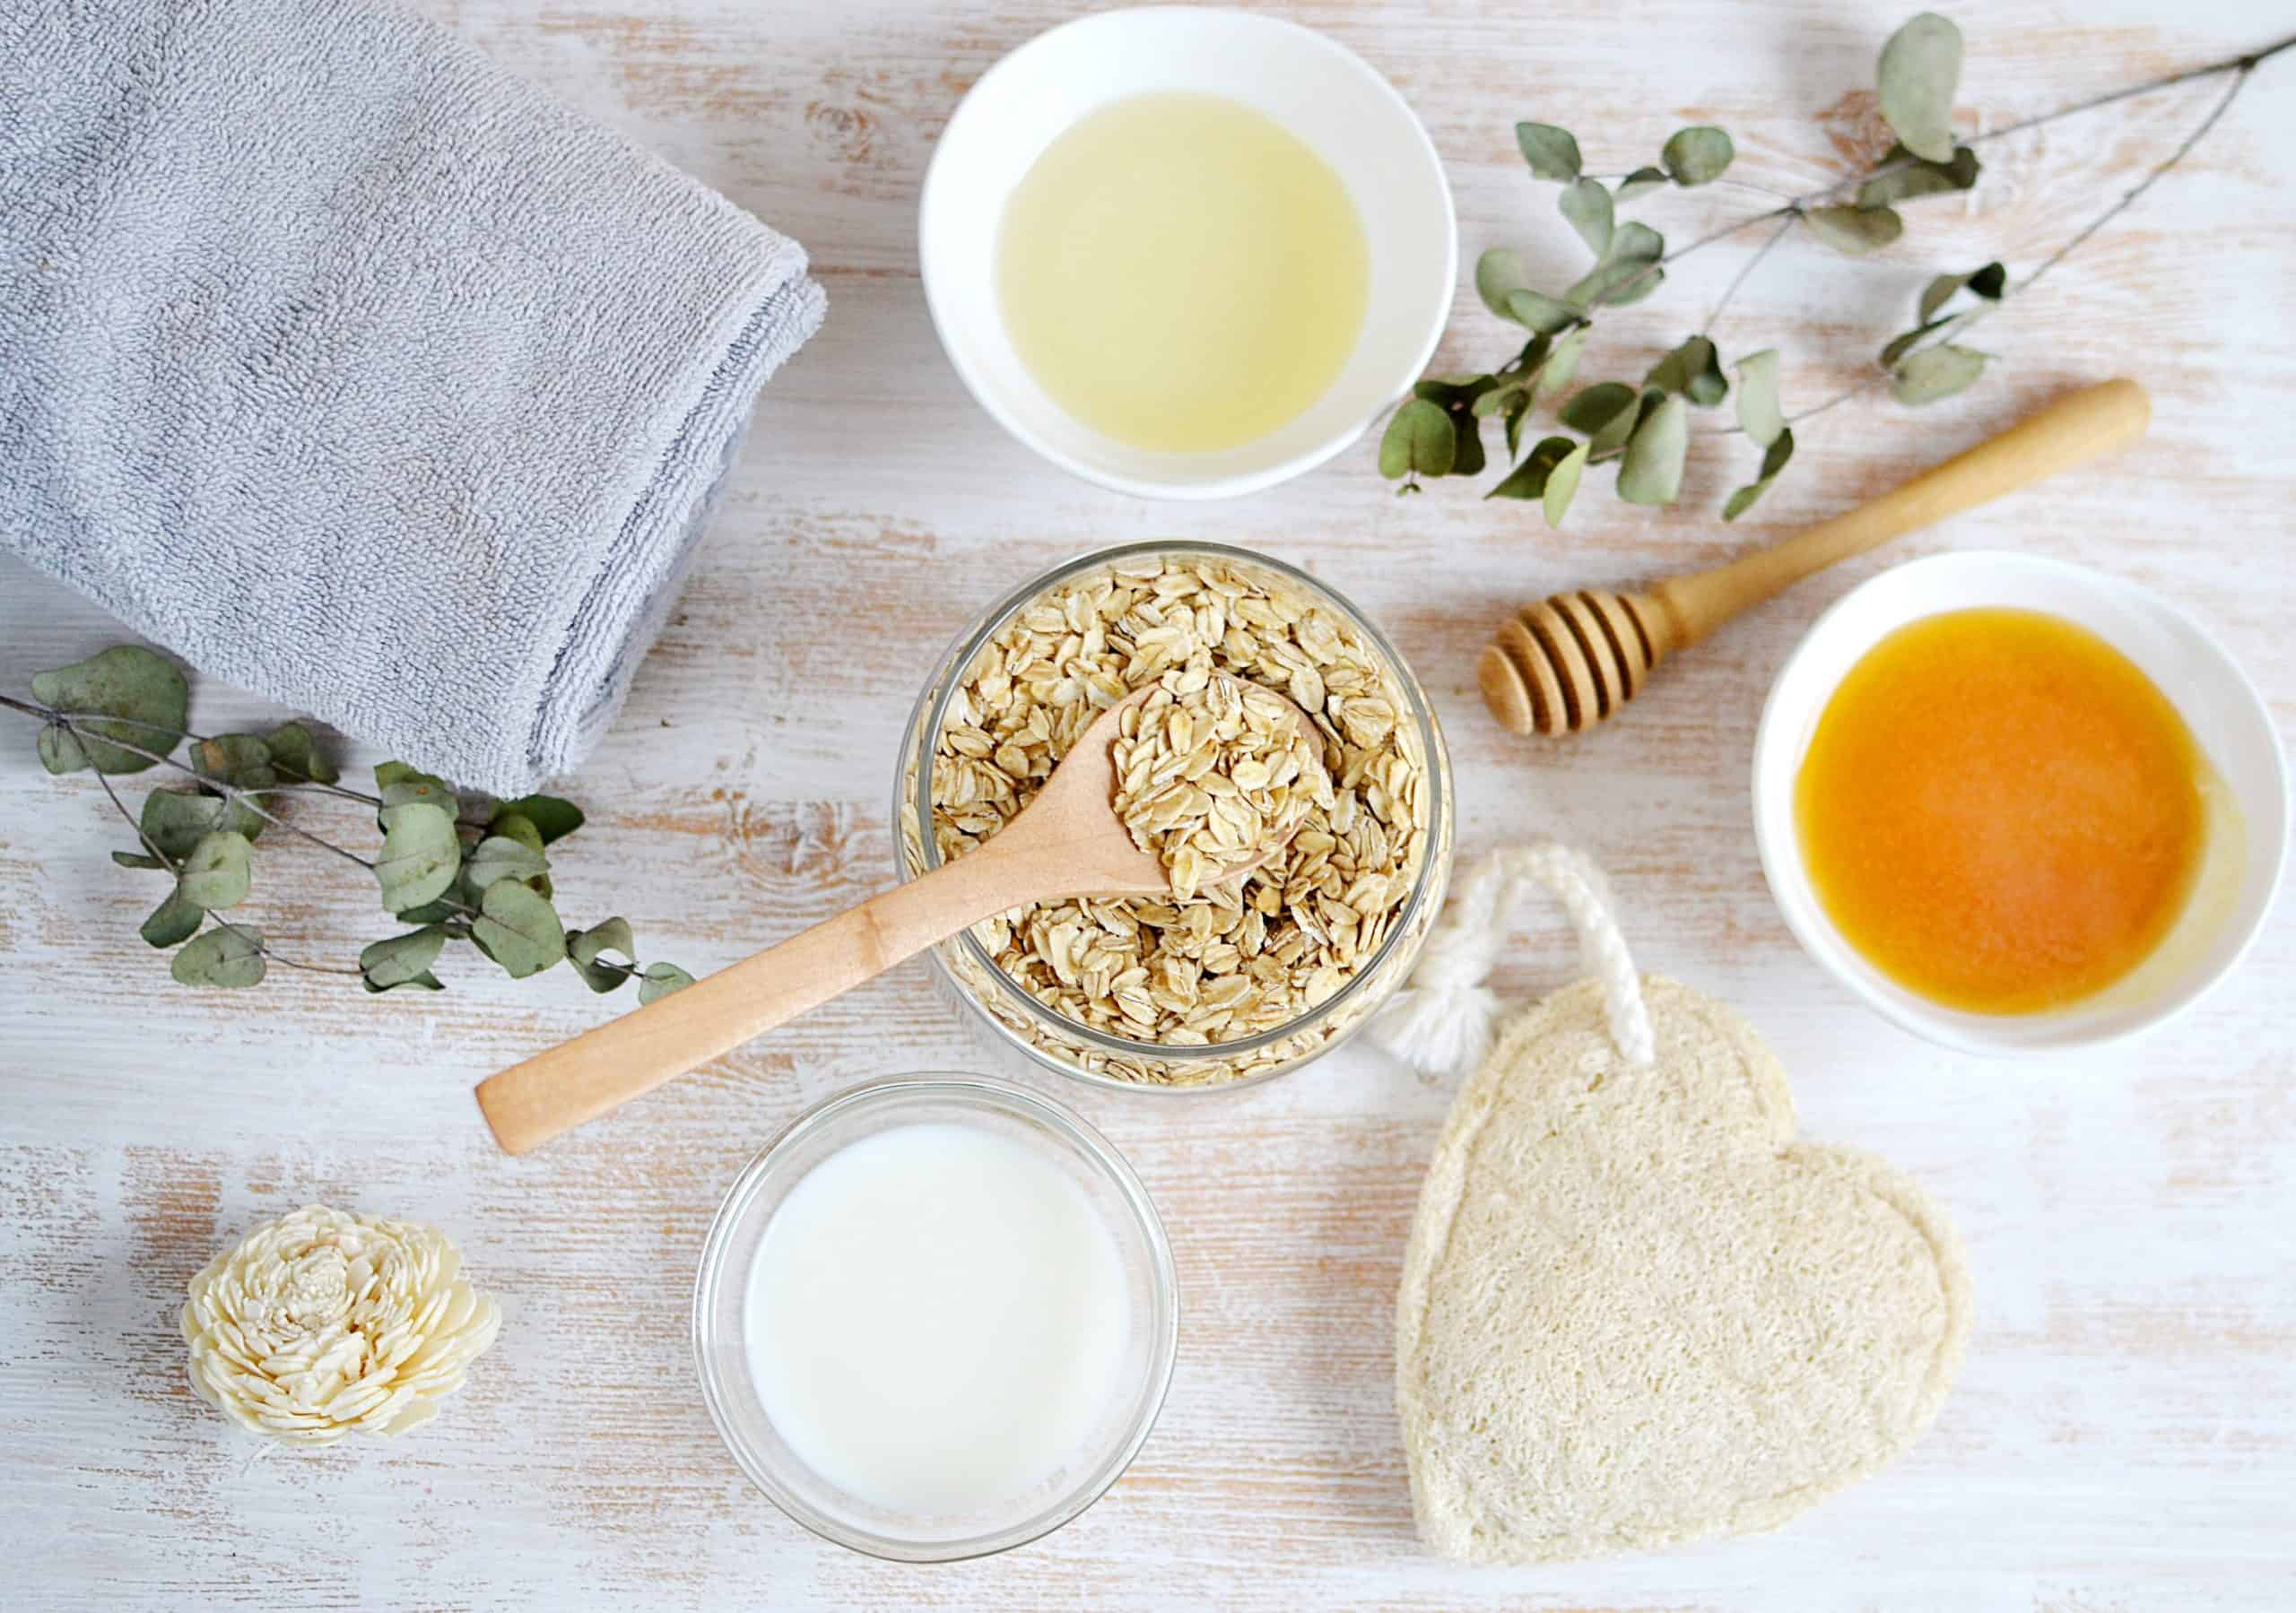 homemade face mask ingredients